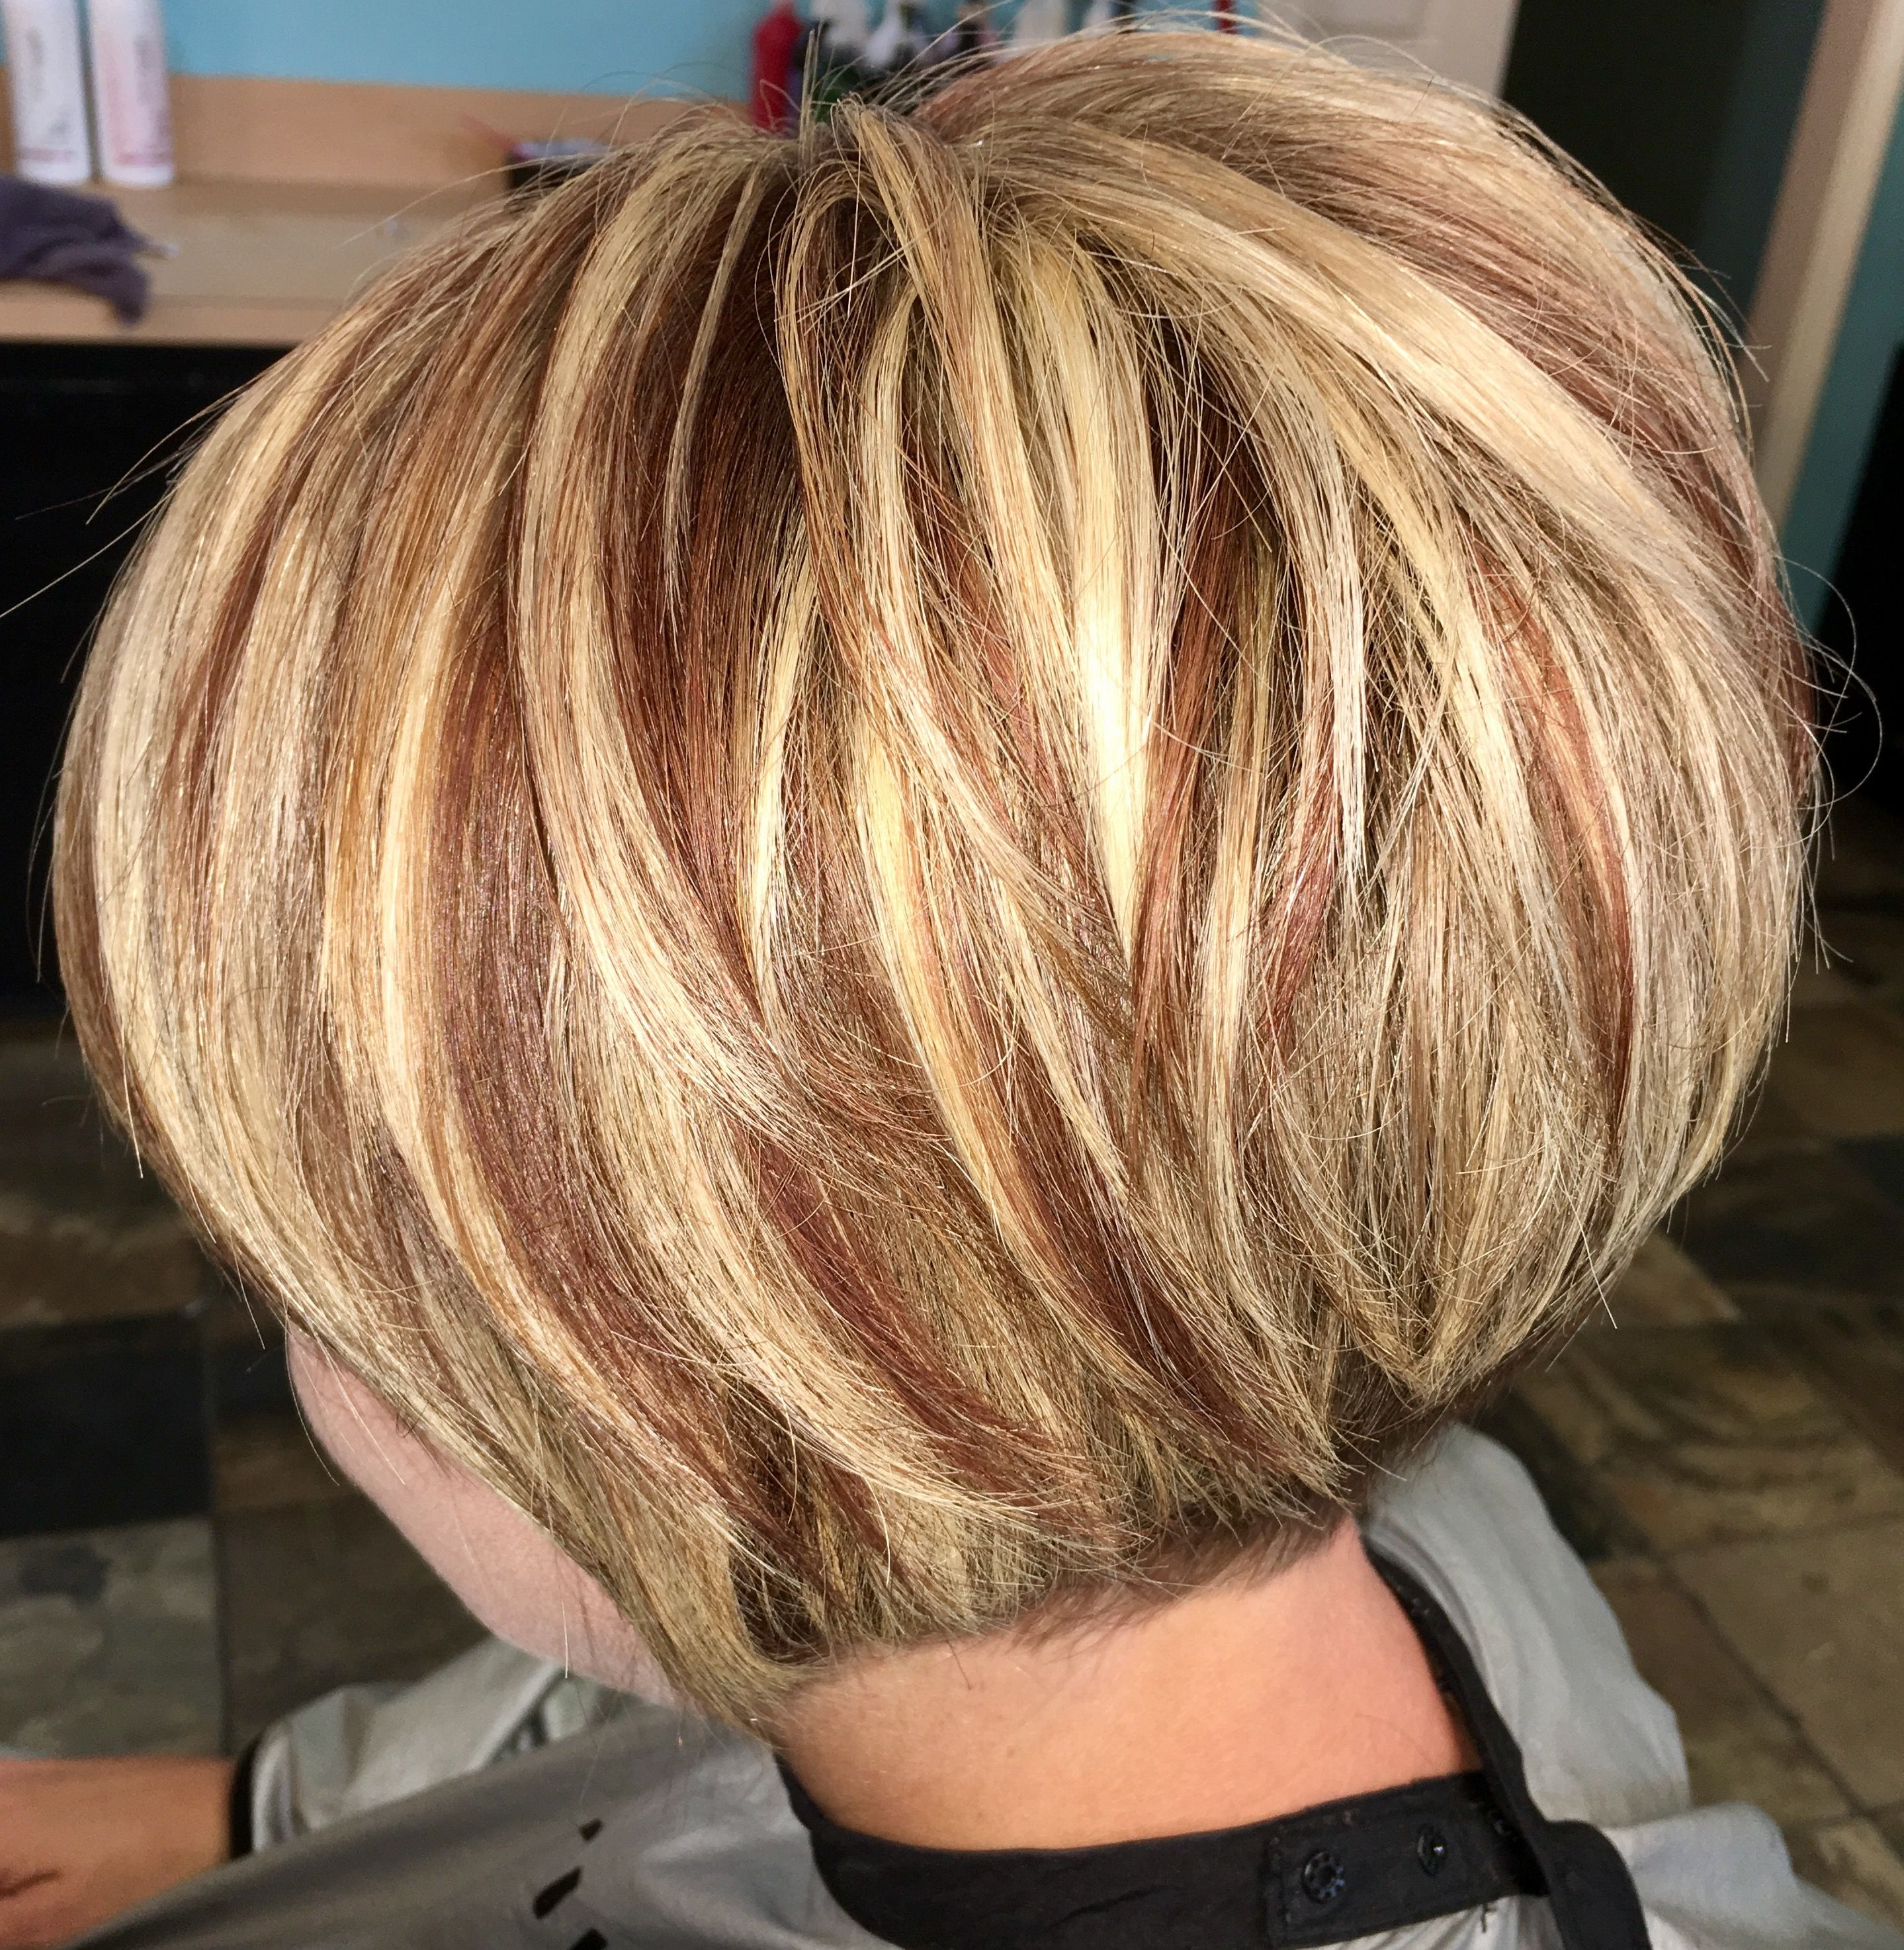 The red underneath hairsyles pinterest hair style haircuts